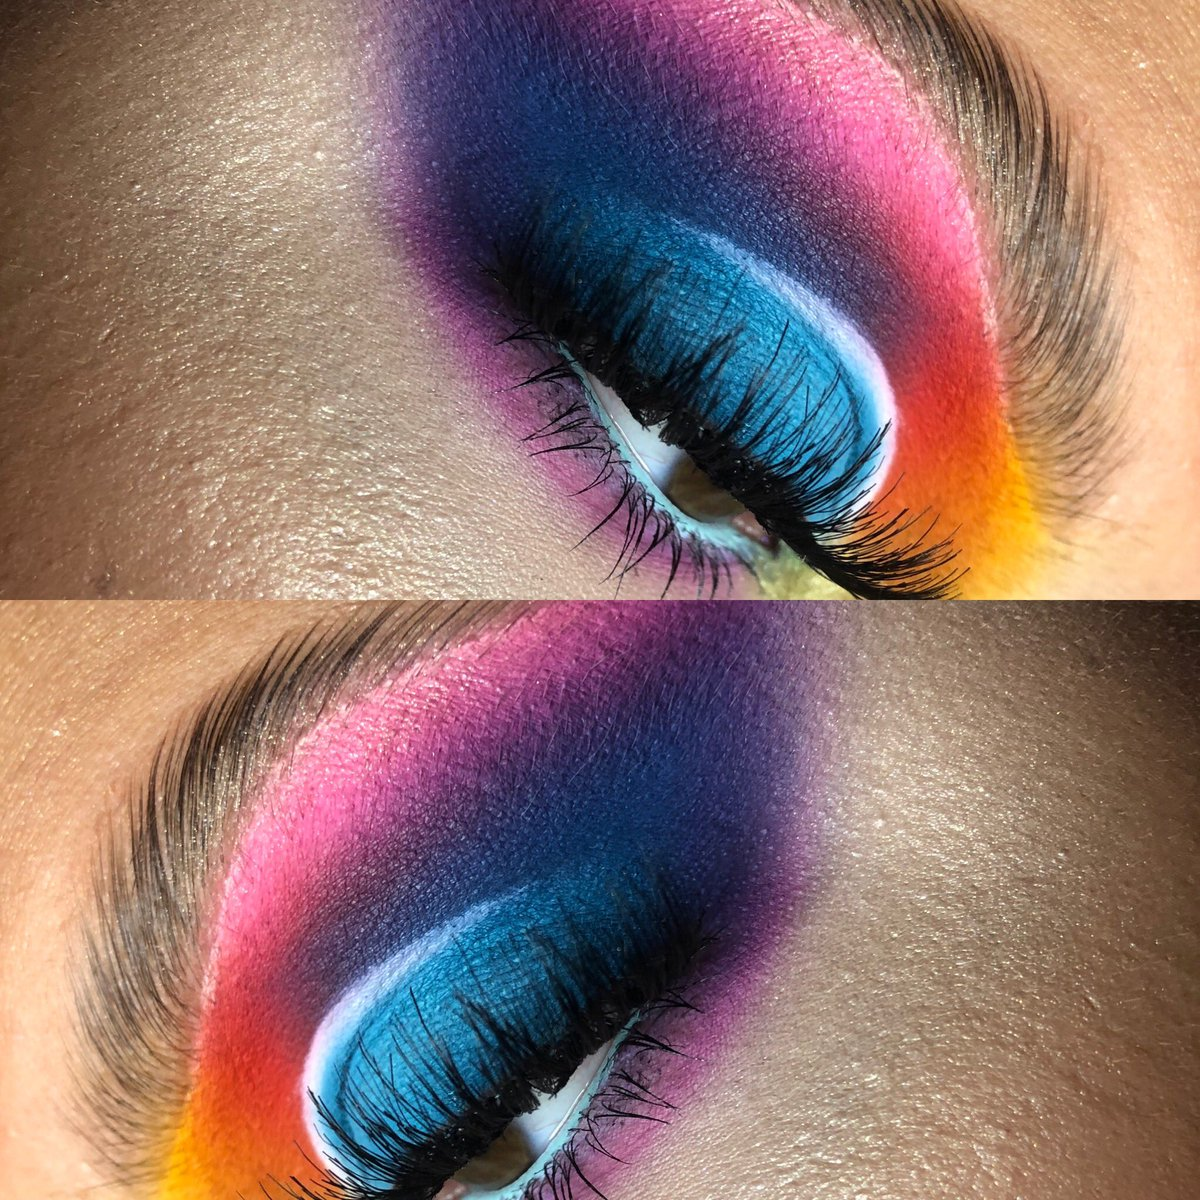 @saskiafield look  @plouise_makeup_acade my base shade 0,touch of frost  @bperfectcosmetics carnival xl palette @staceymariemua  @beautybaycom brights palette  @bperfectcosmetics  bad llama mascara @peachesmakeup lash number 08 @peachesandcream banana boat pigmentpic.twitter.com/dODndOI87C